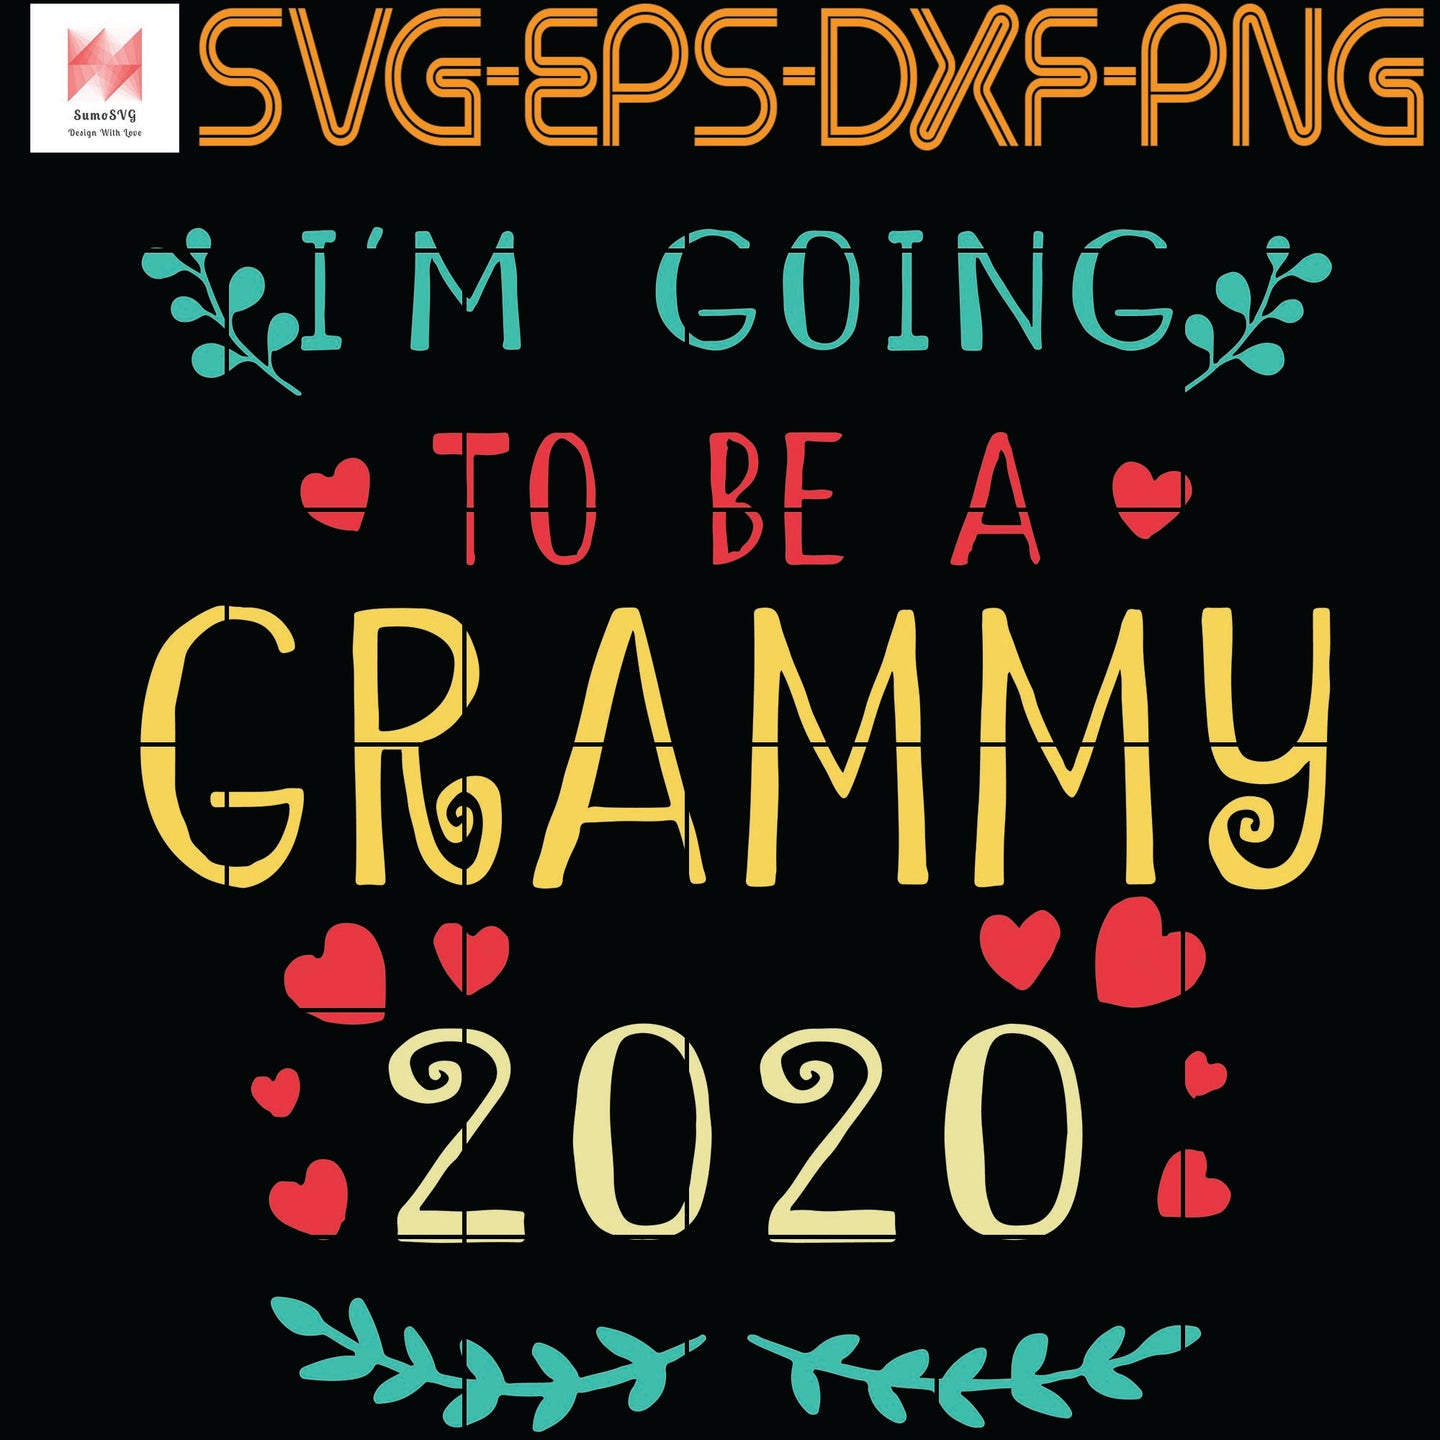 I'm Going To Be A Grammy 2020 SVG, EPS, DXF, PNG, Digital Download